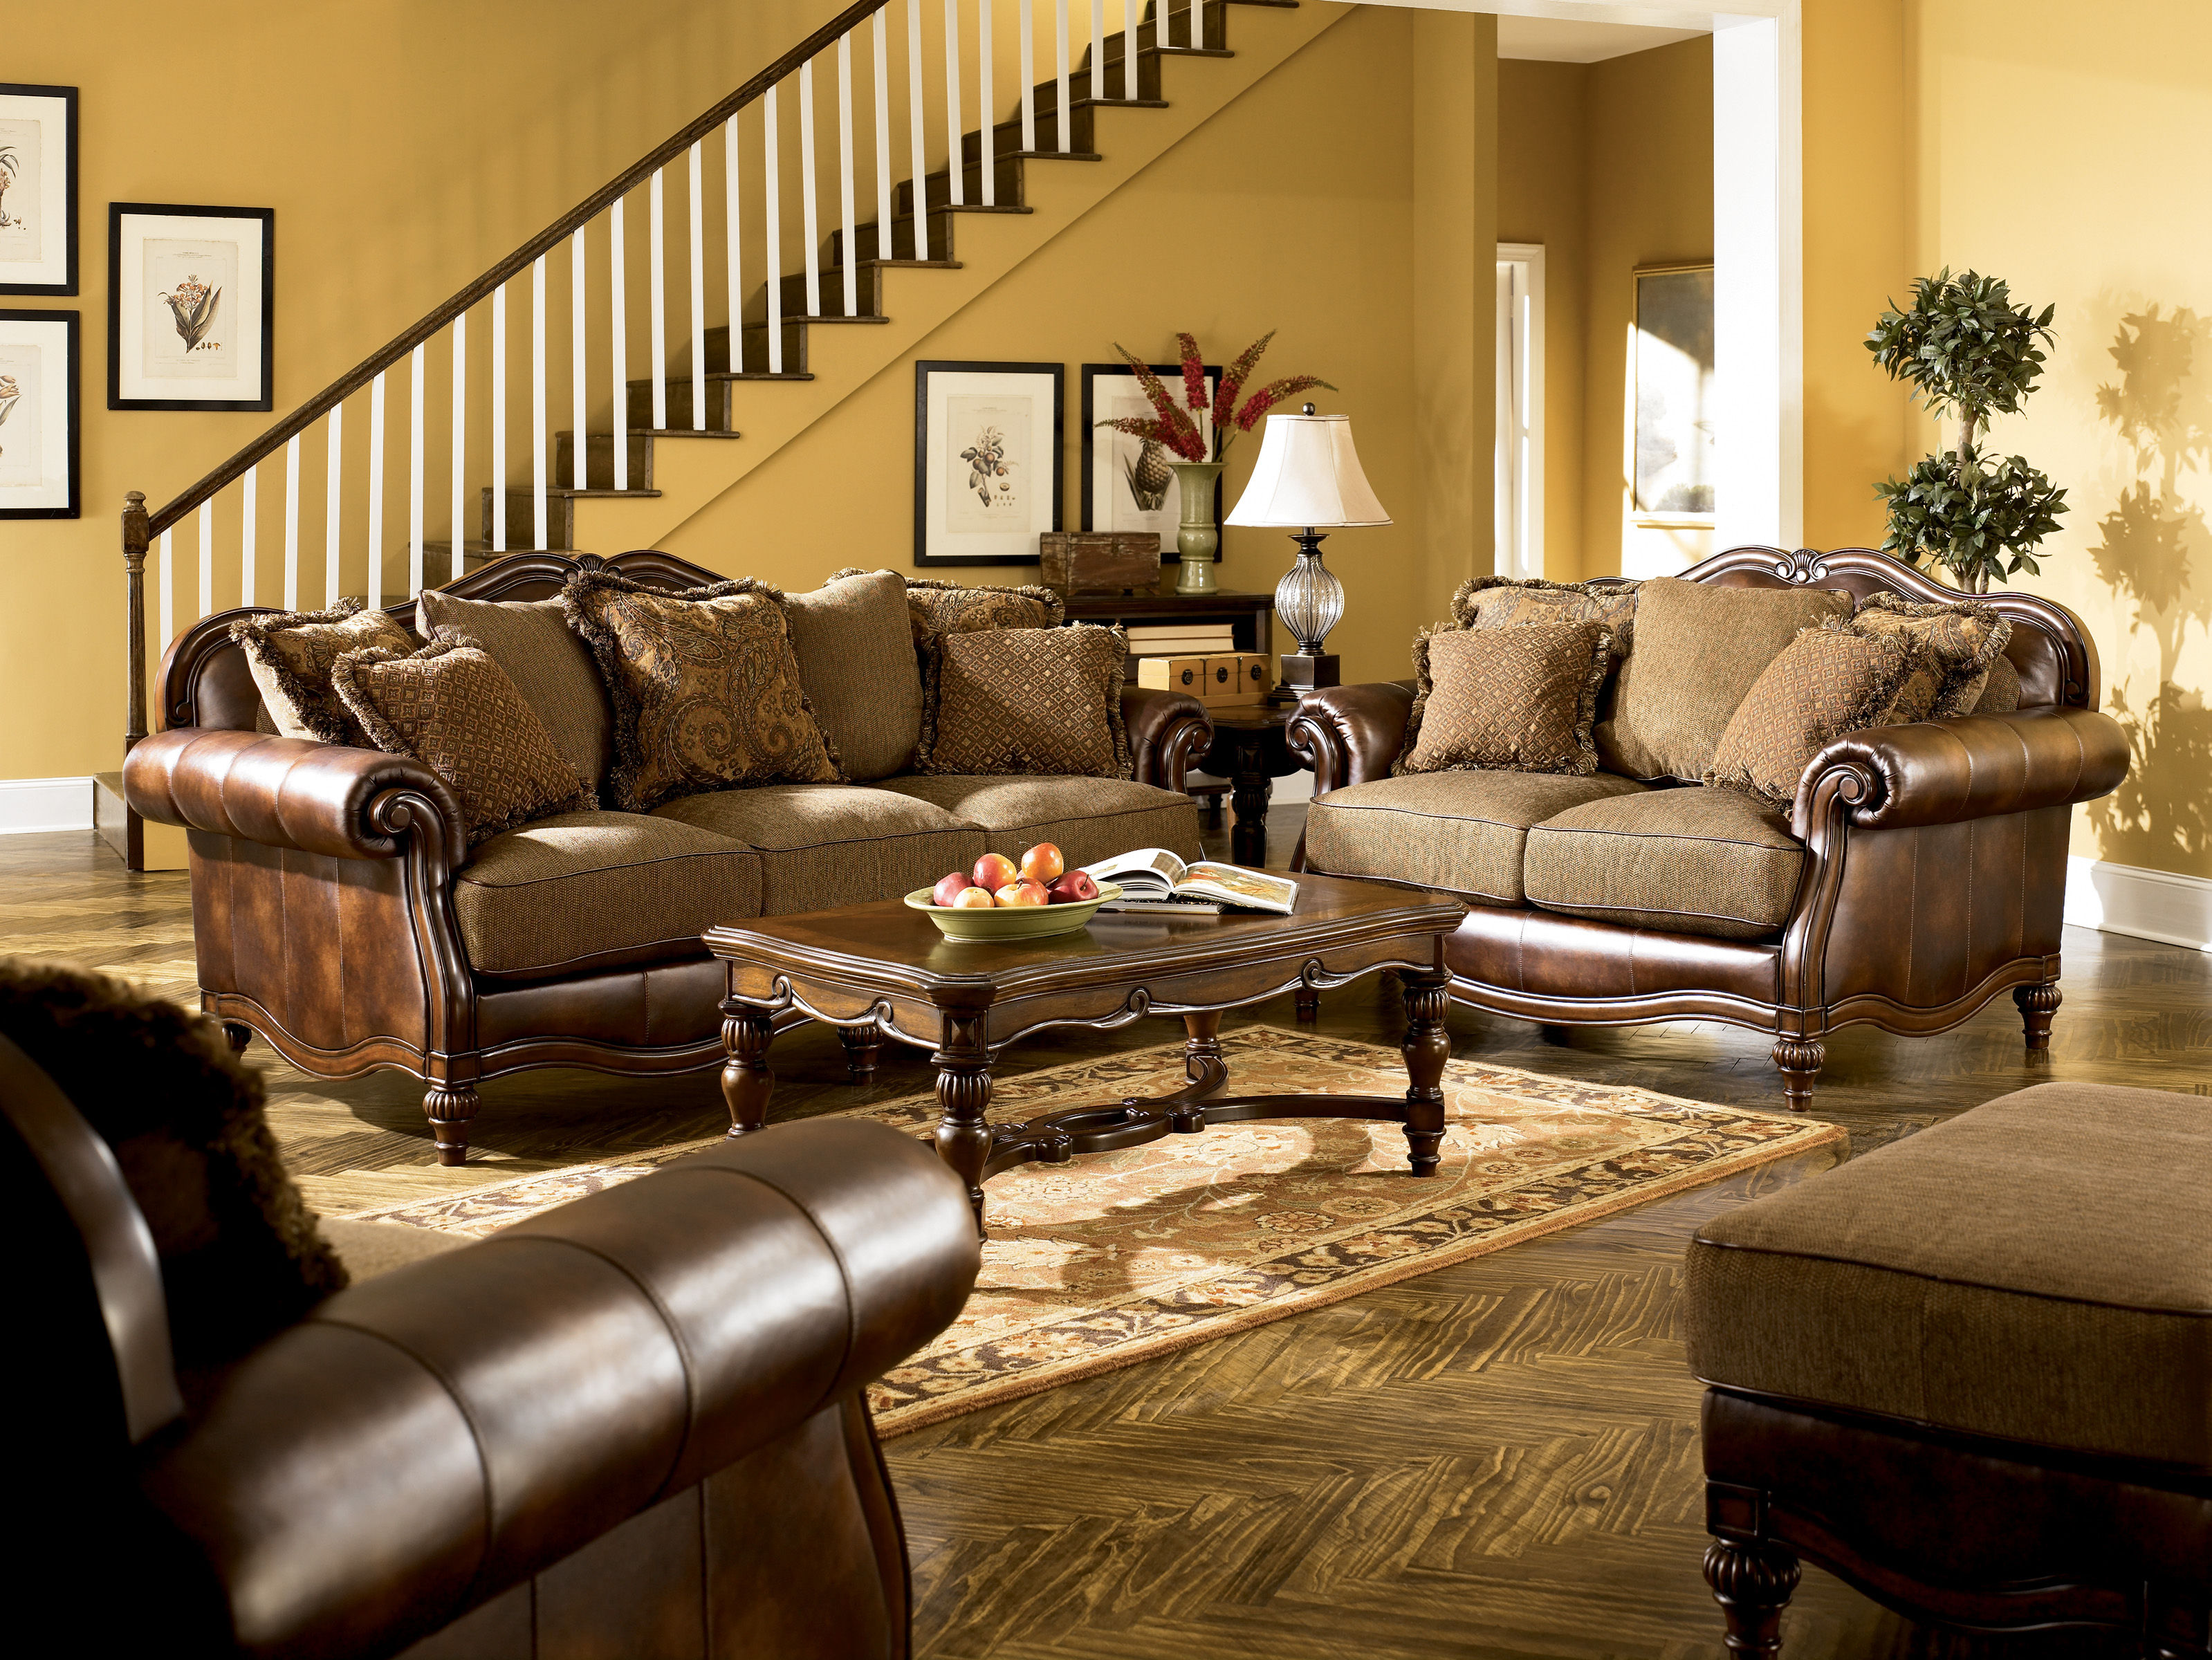 Ashley Furniture Claremore Antique Living Room Set The Classy Home